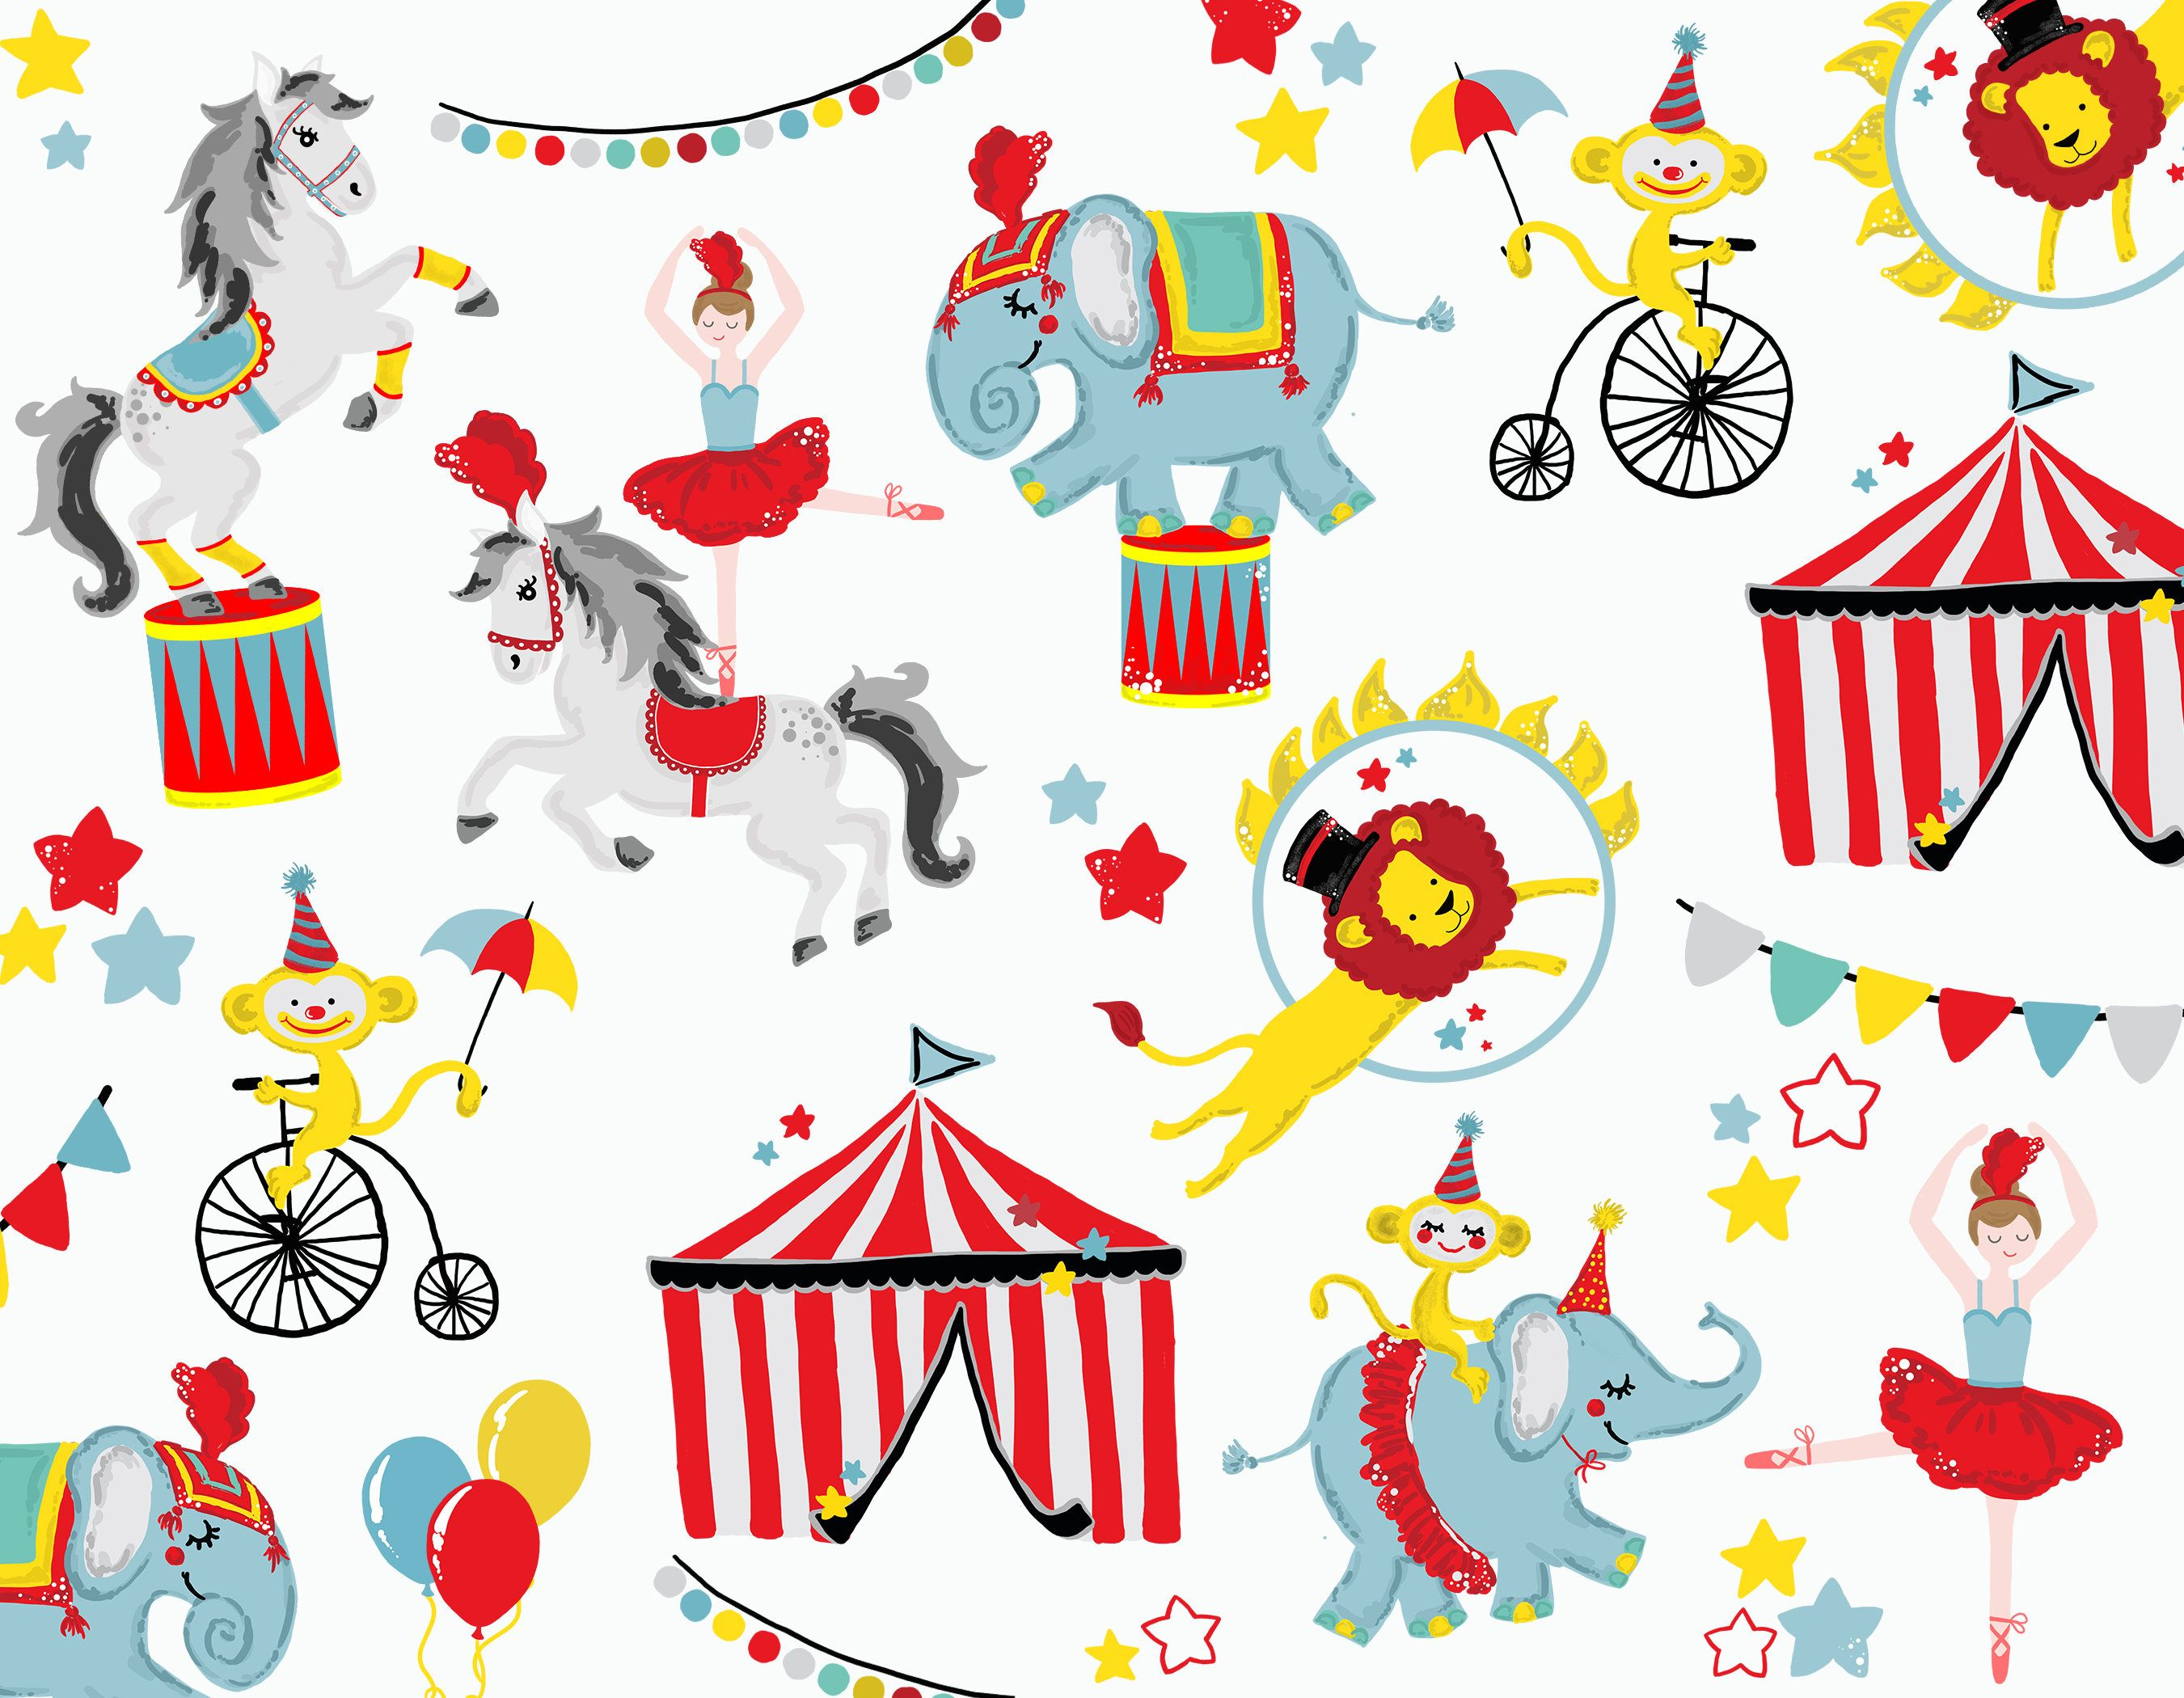 Carnival celebration clipart free library Circus Show Clipart, Circus Animals Clip Art, Carnival Celebration ... free library